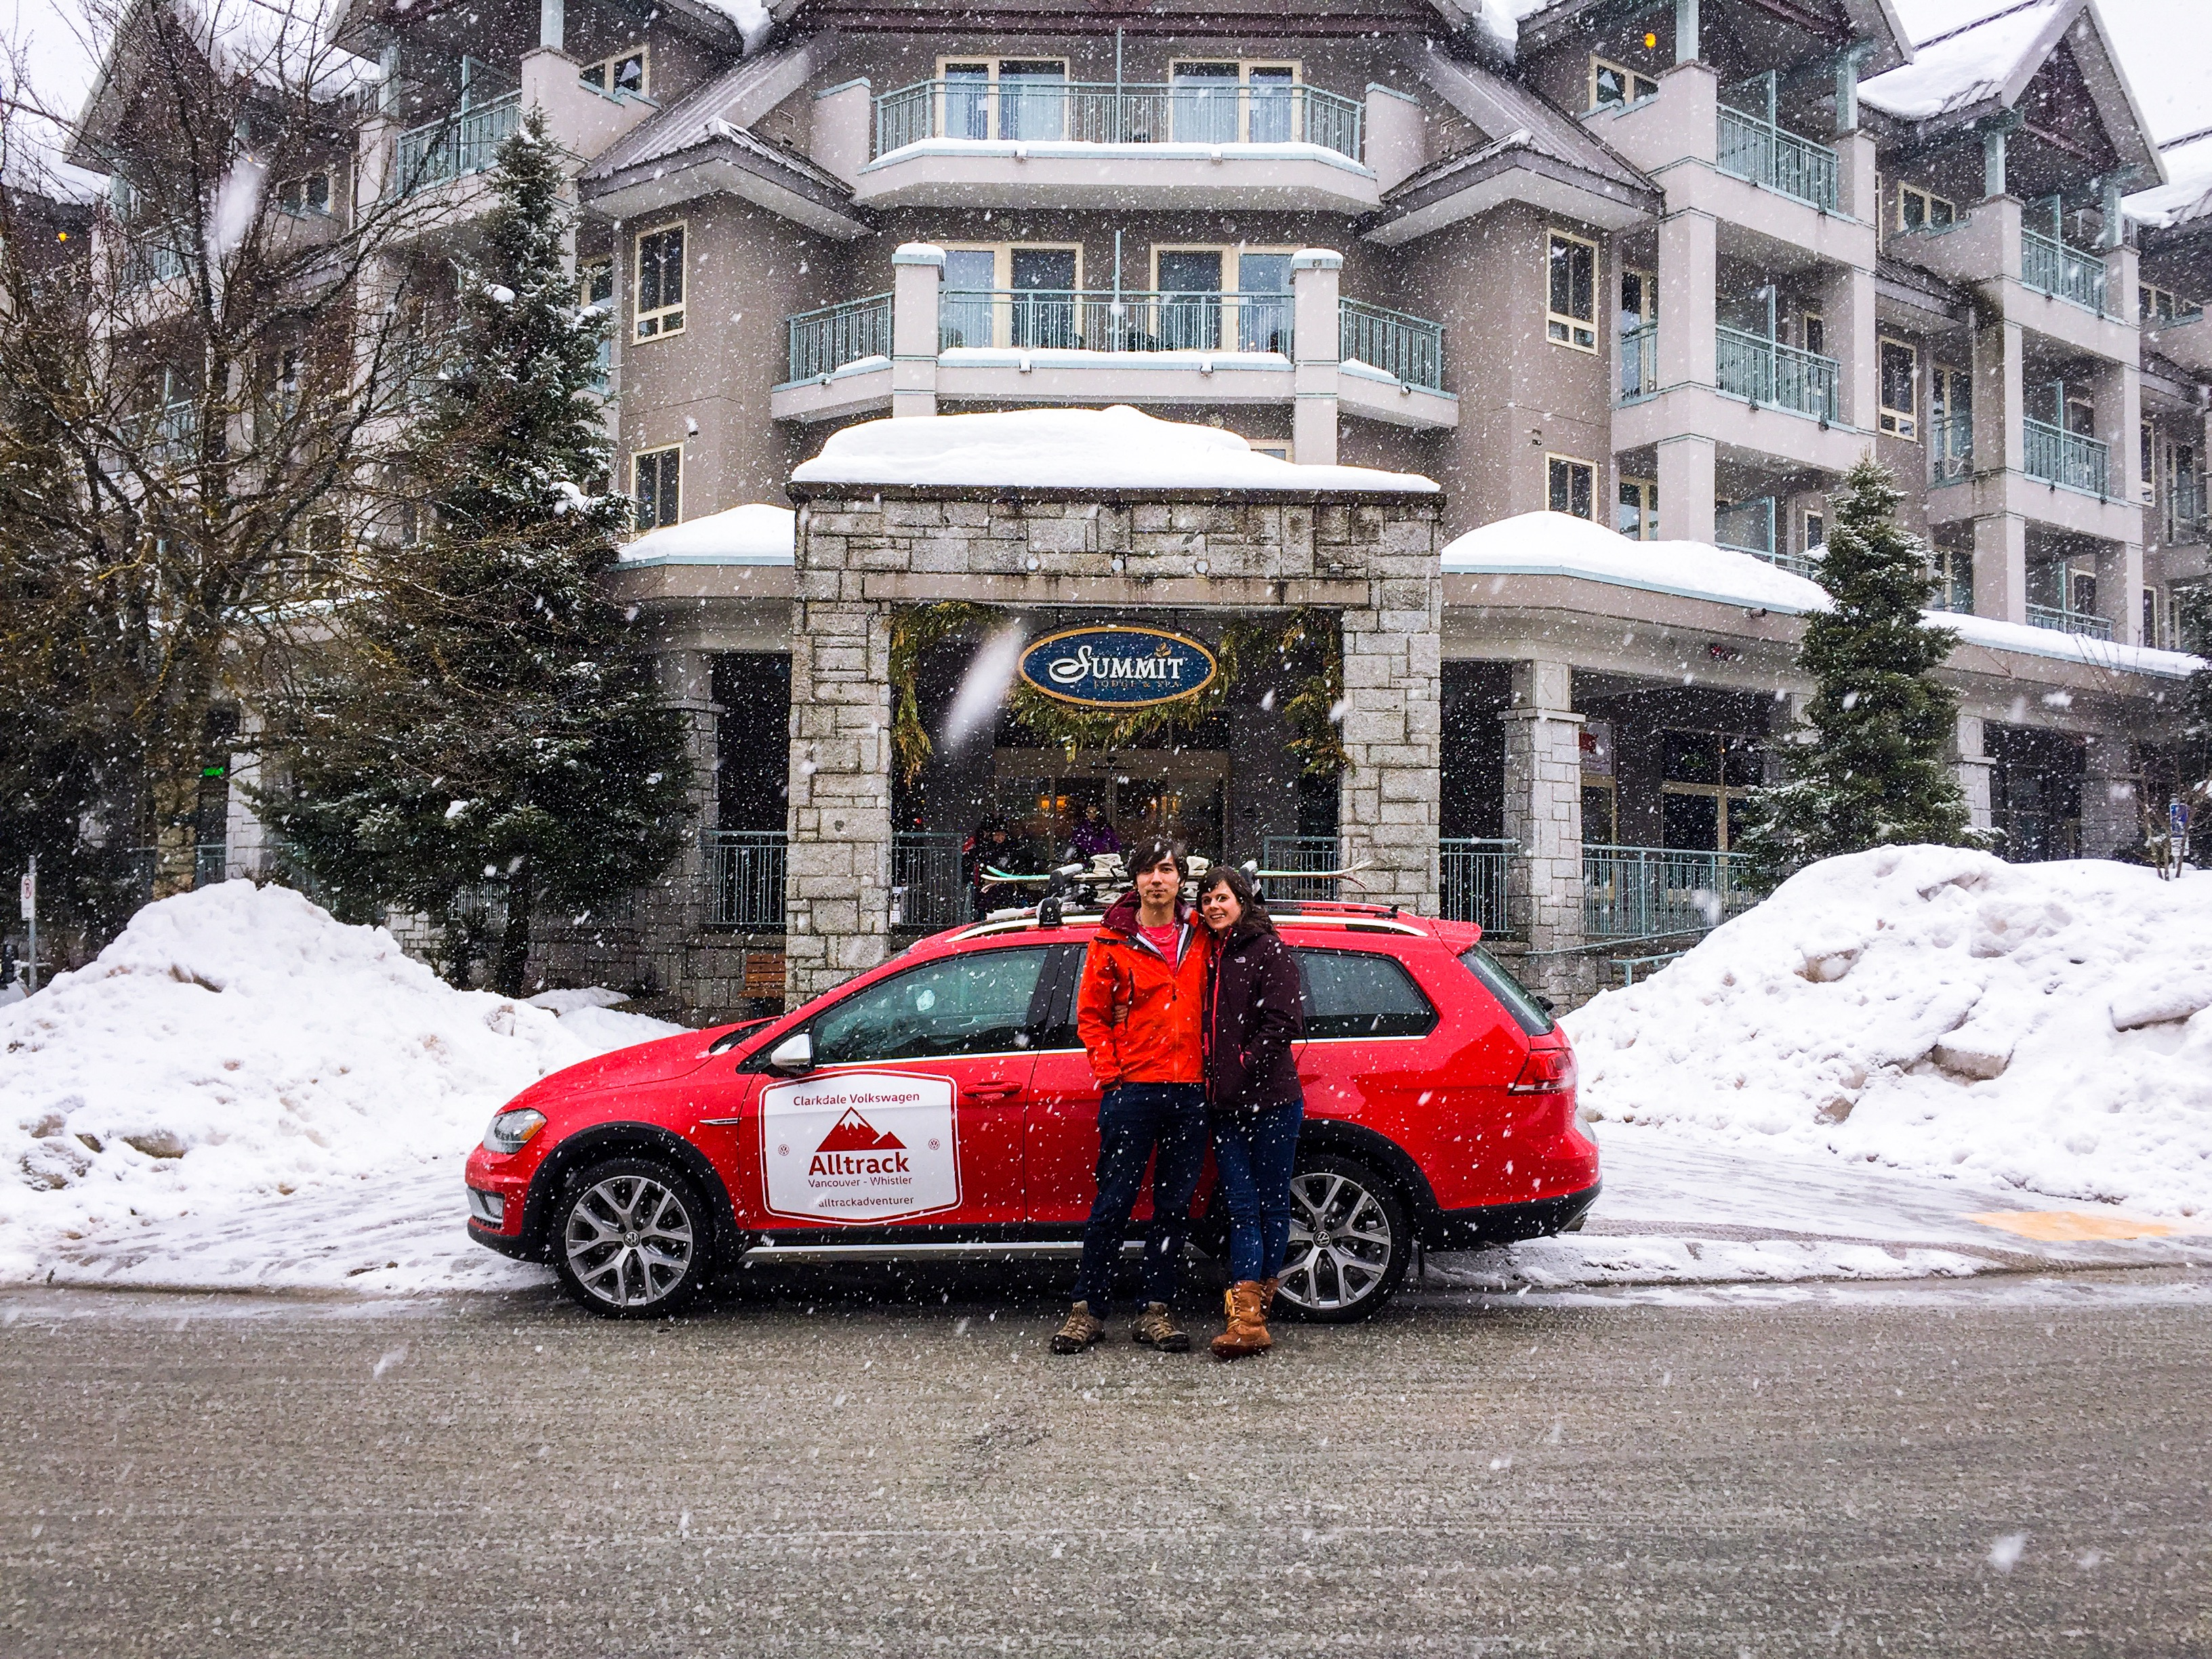 Mike and Stéphanie, winners of the Alltrack Weekend Contest arrive in snowy Whistler.